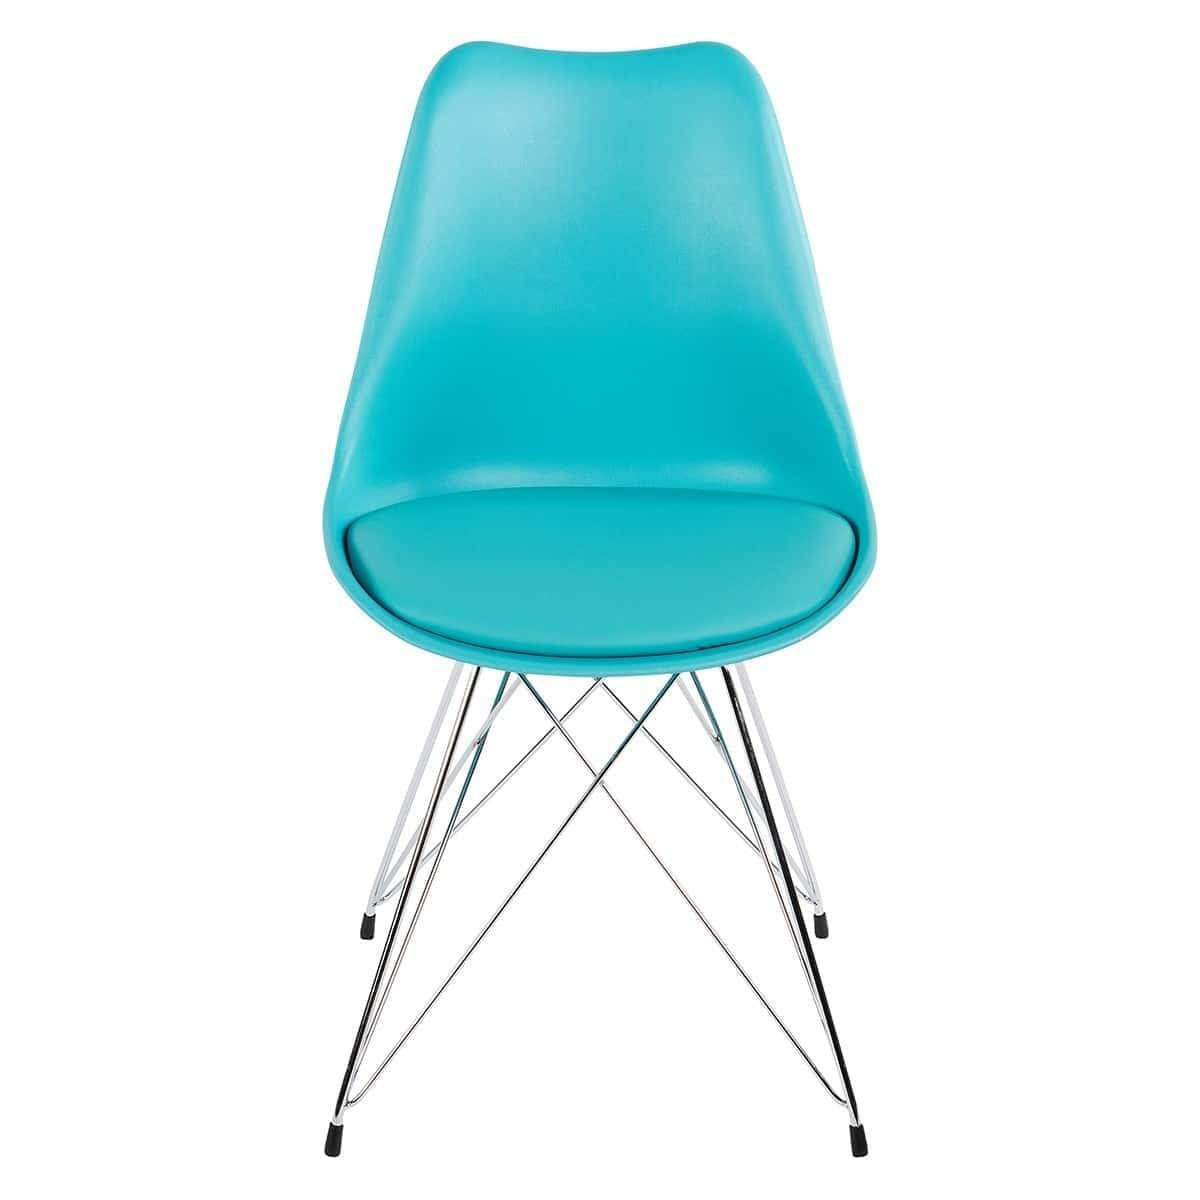 SET OF 2 Replica Eames DSR Chrome Eiffel Chair - Turquoise